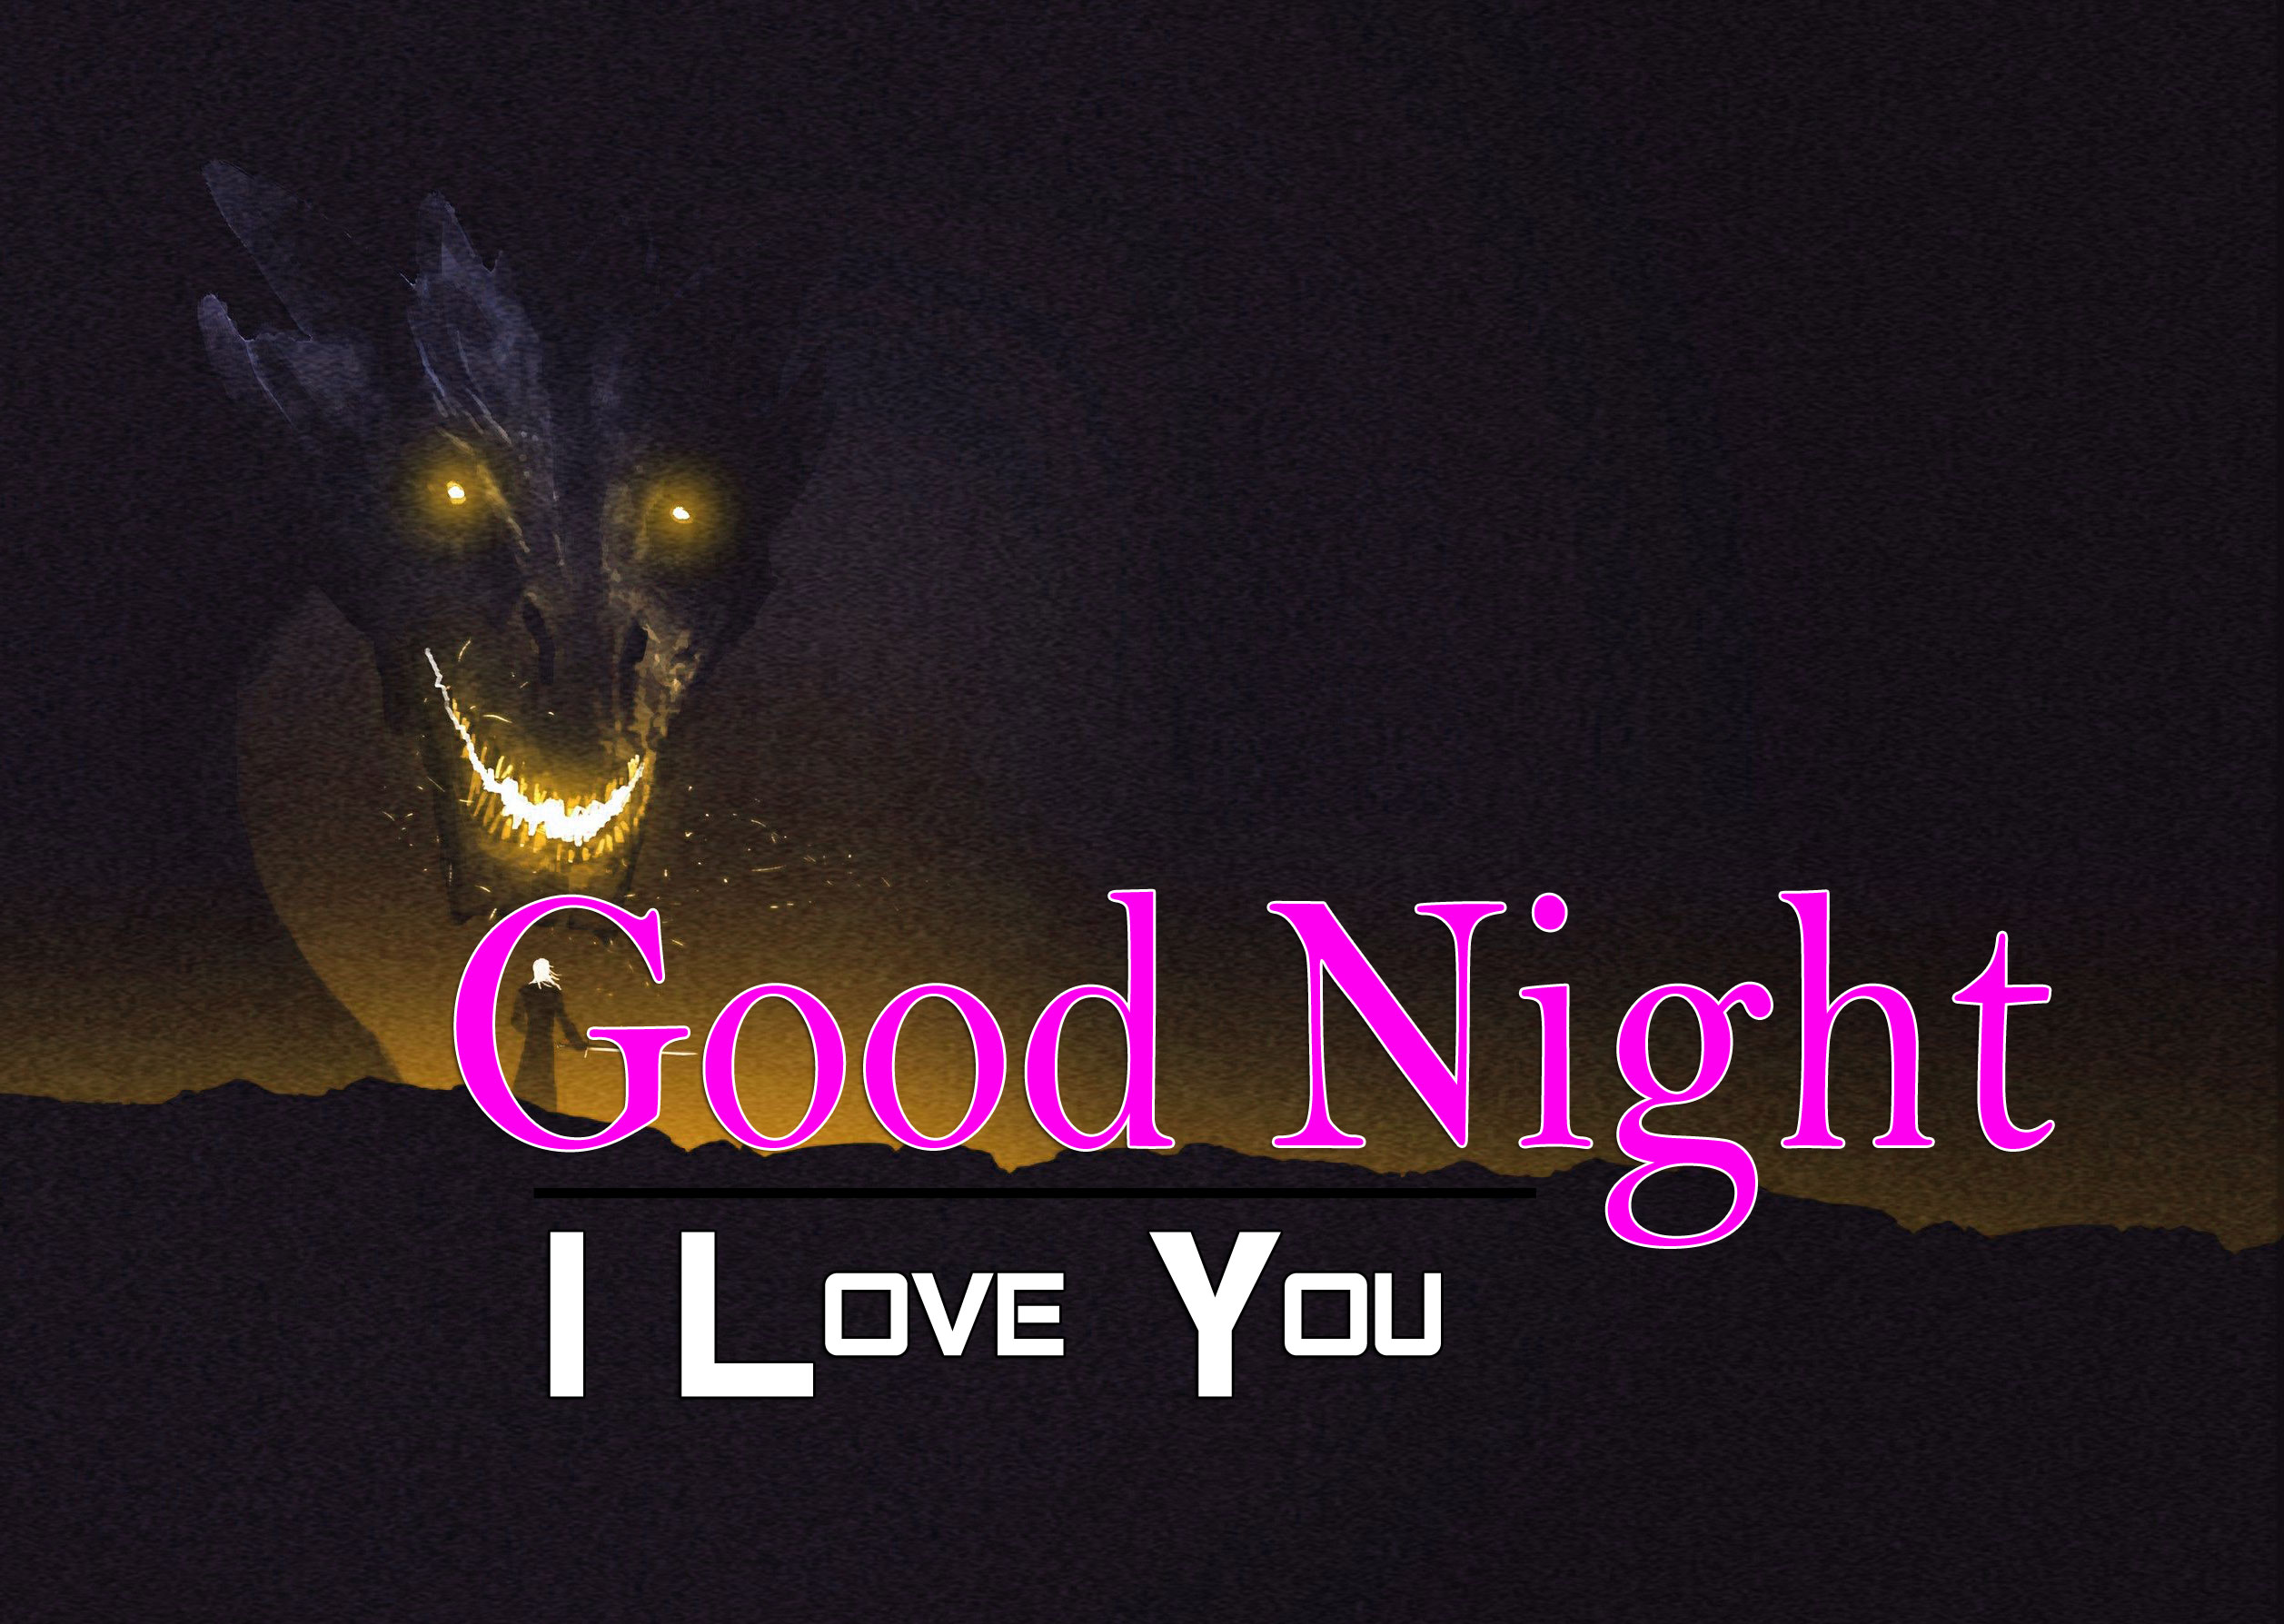 Good Night Images Wallpaper Free